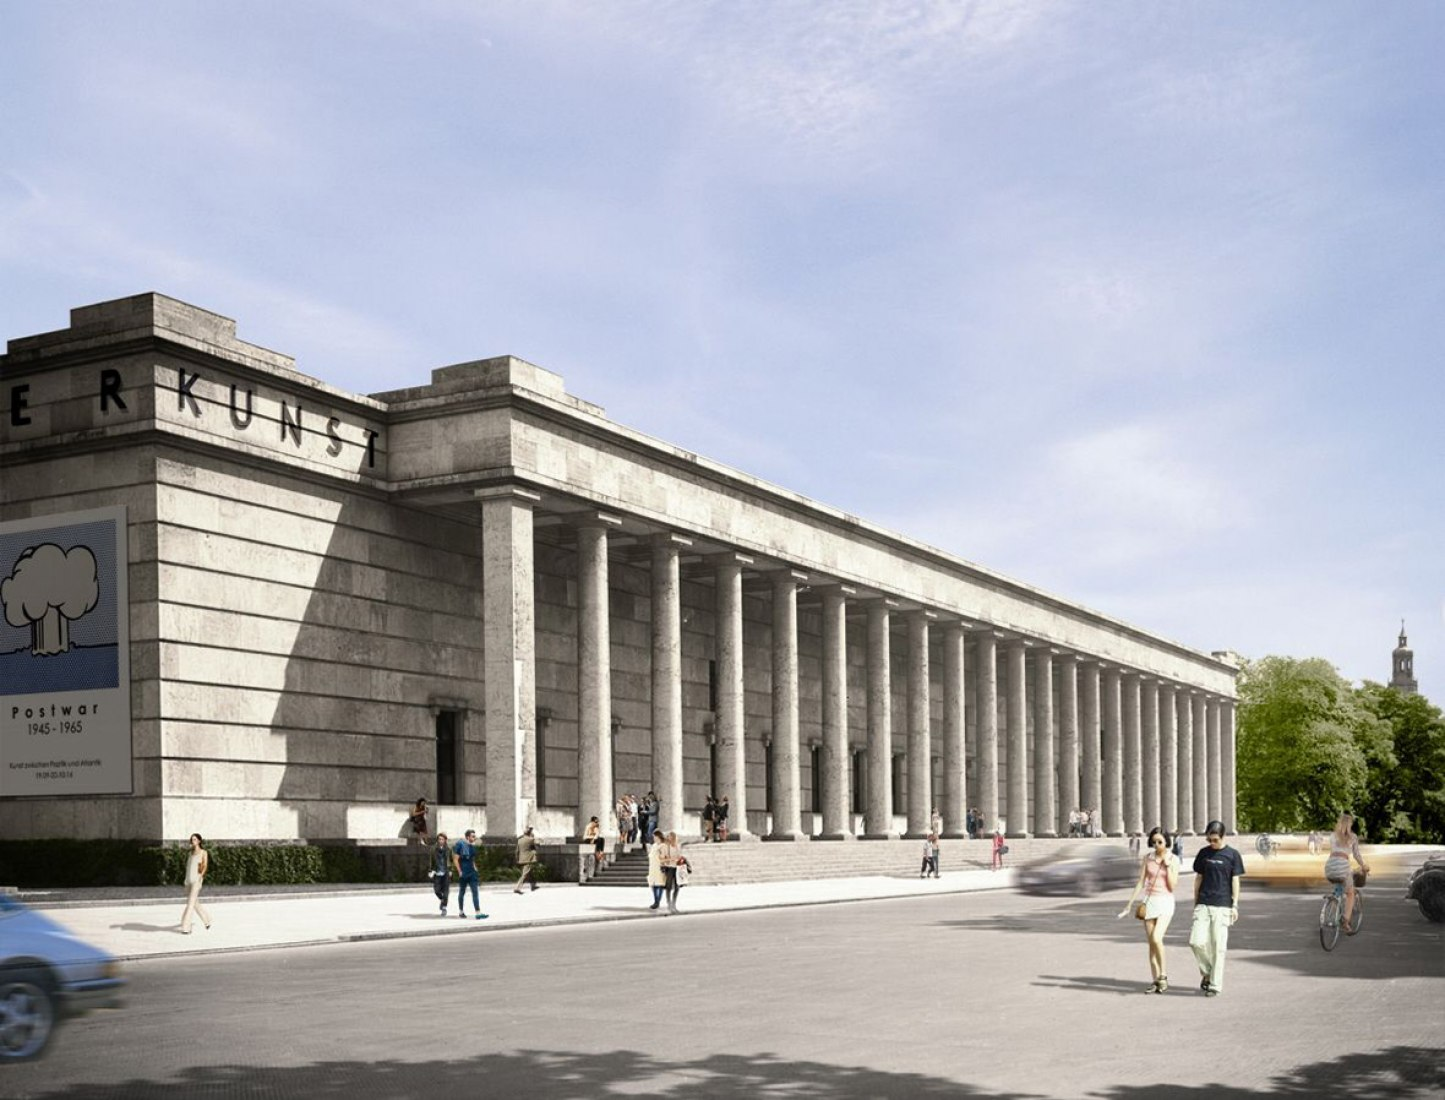 Haus der Kunst by David Chipperfield Architects, first renderings.